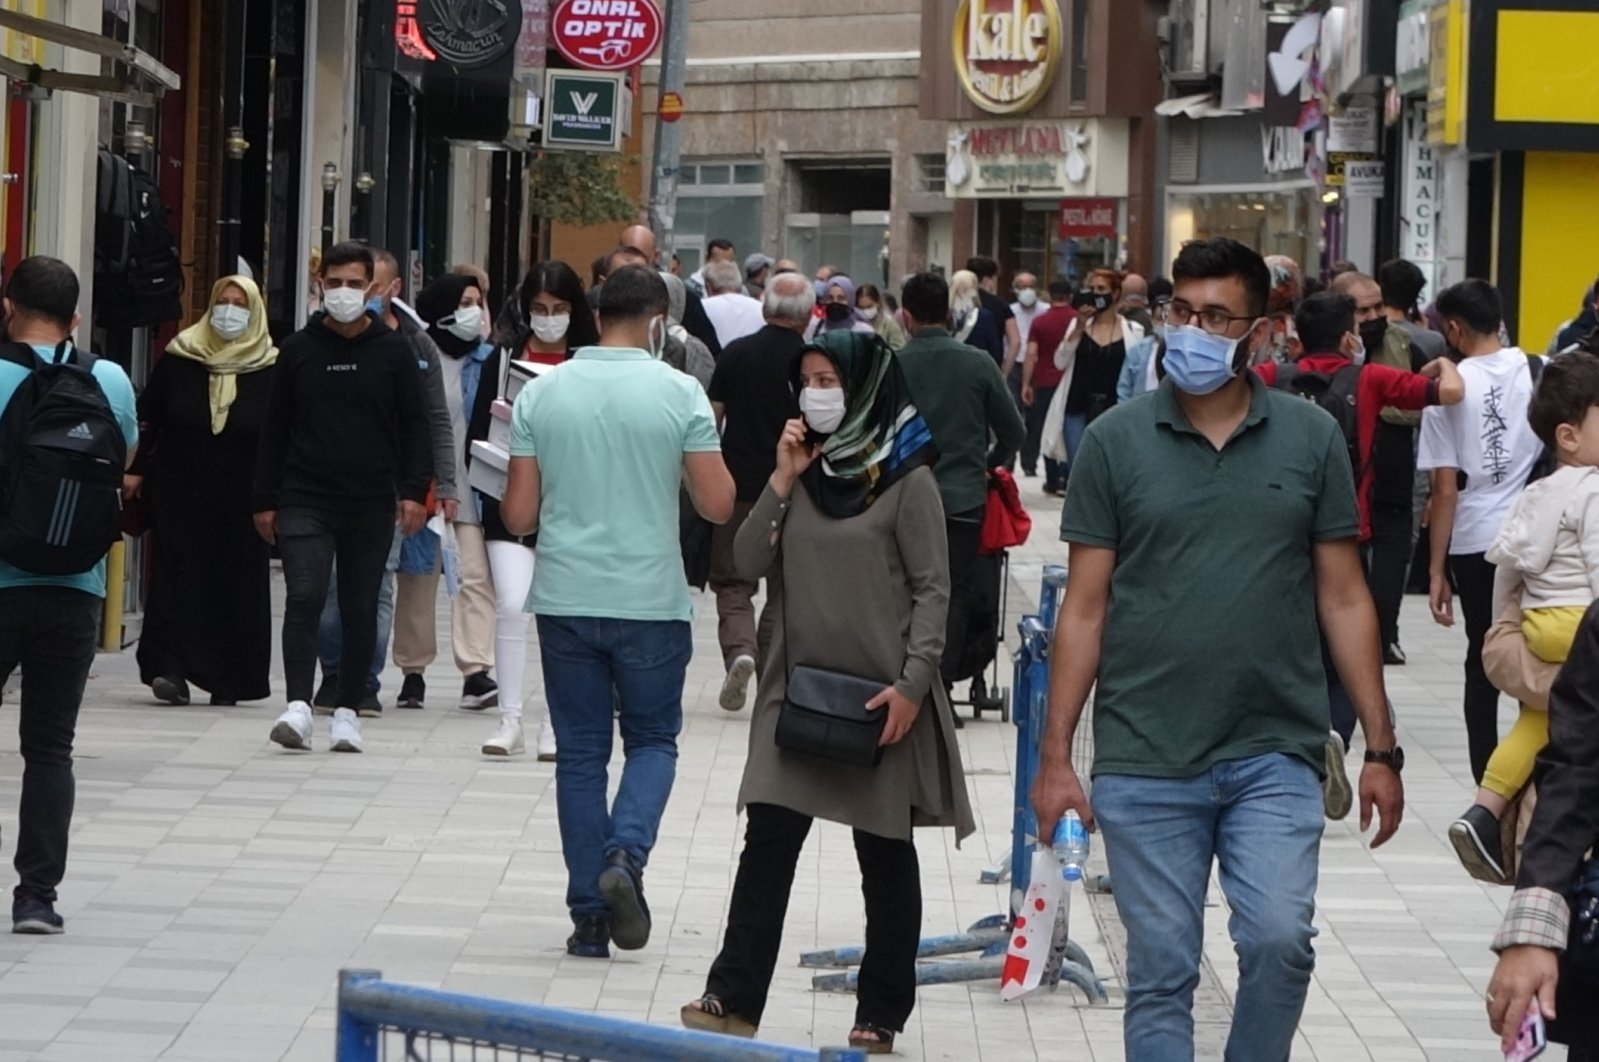 People wearing protective masks against COVID-19 walk on a street in Trabzon, Turkey, Sept. 6, 2021. (DHA PHOTO)